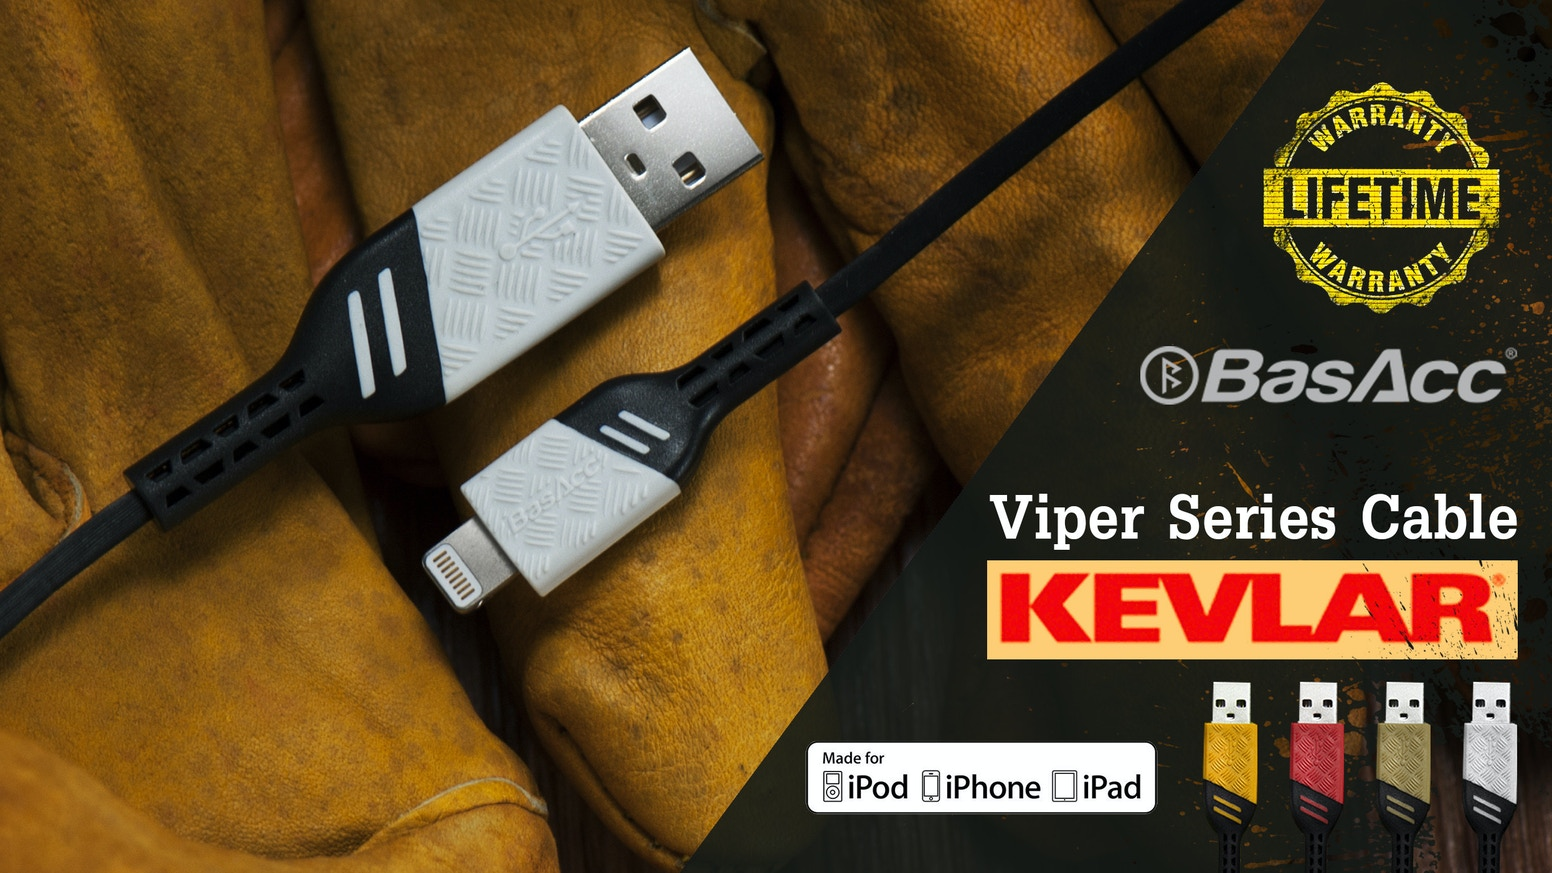 Revolutionary Design and the Strongest Lightning MFi Certified Cable made with Kevlar - Lifetime Warranty!